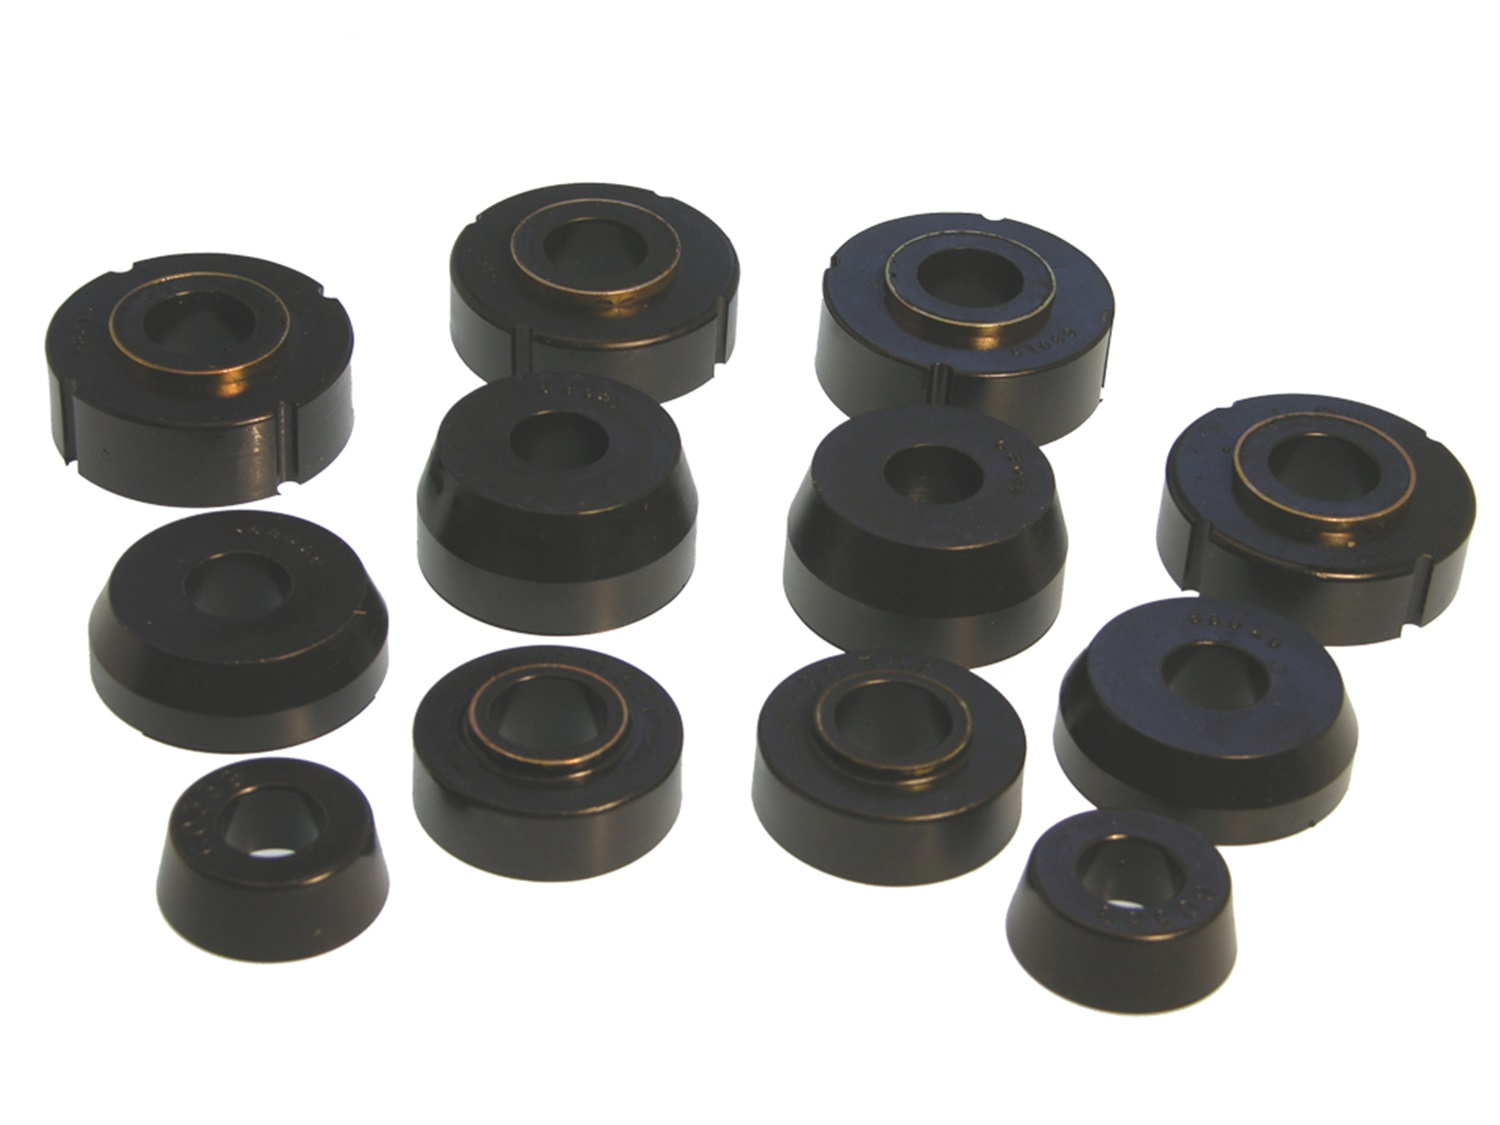 Prothane 6-110-BL Body And Cab Mount Bushing Kit Fits 67-79 F-150 F-250 F-350